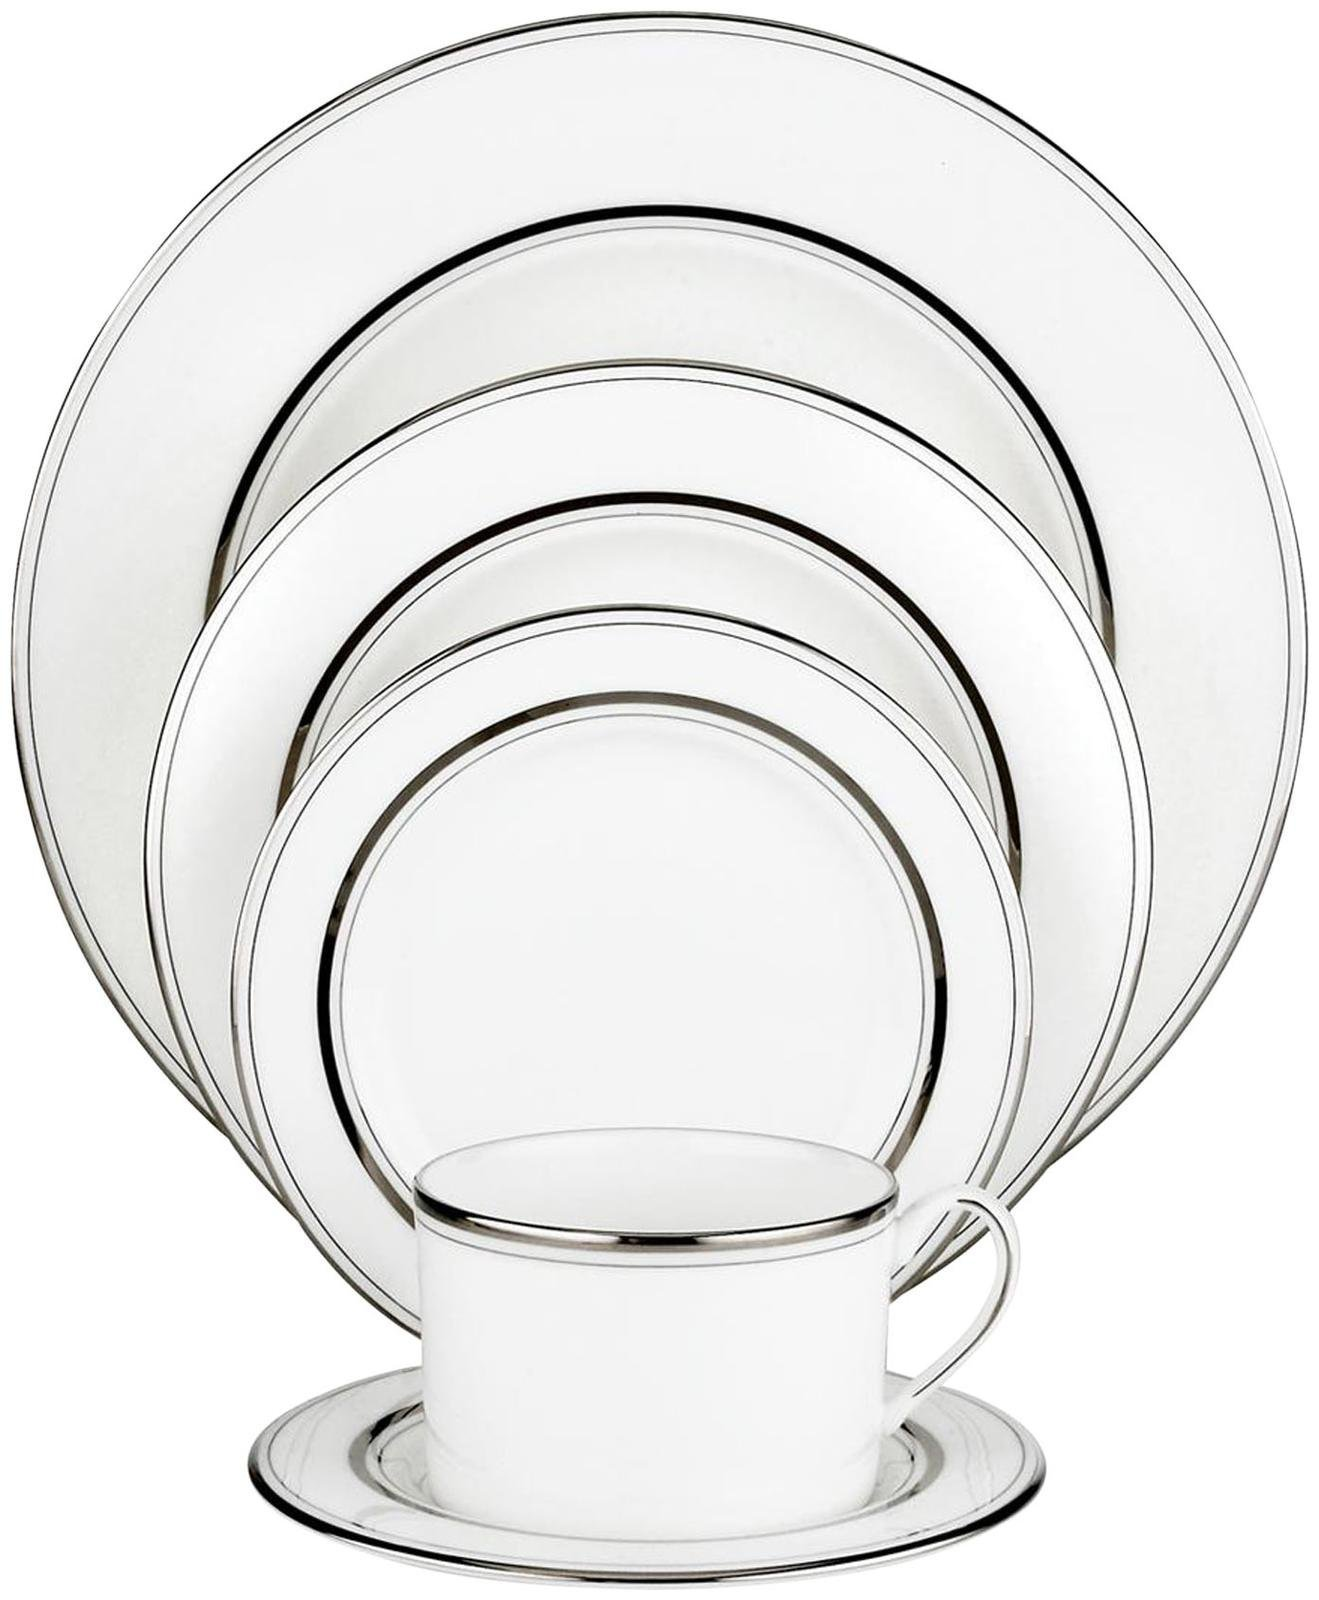 Kate Spade New York Library Lane Platinum Dinnerware 5 Piece Place Setting by Kate Spade New York